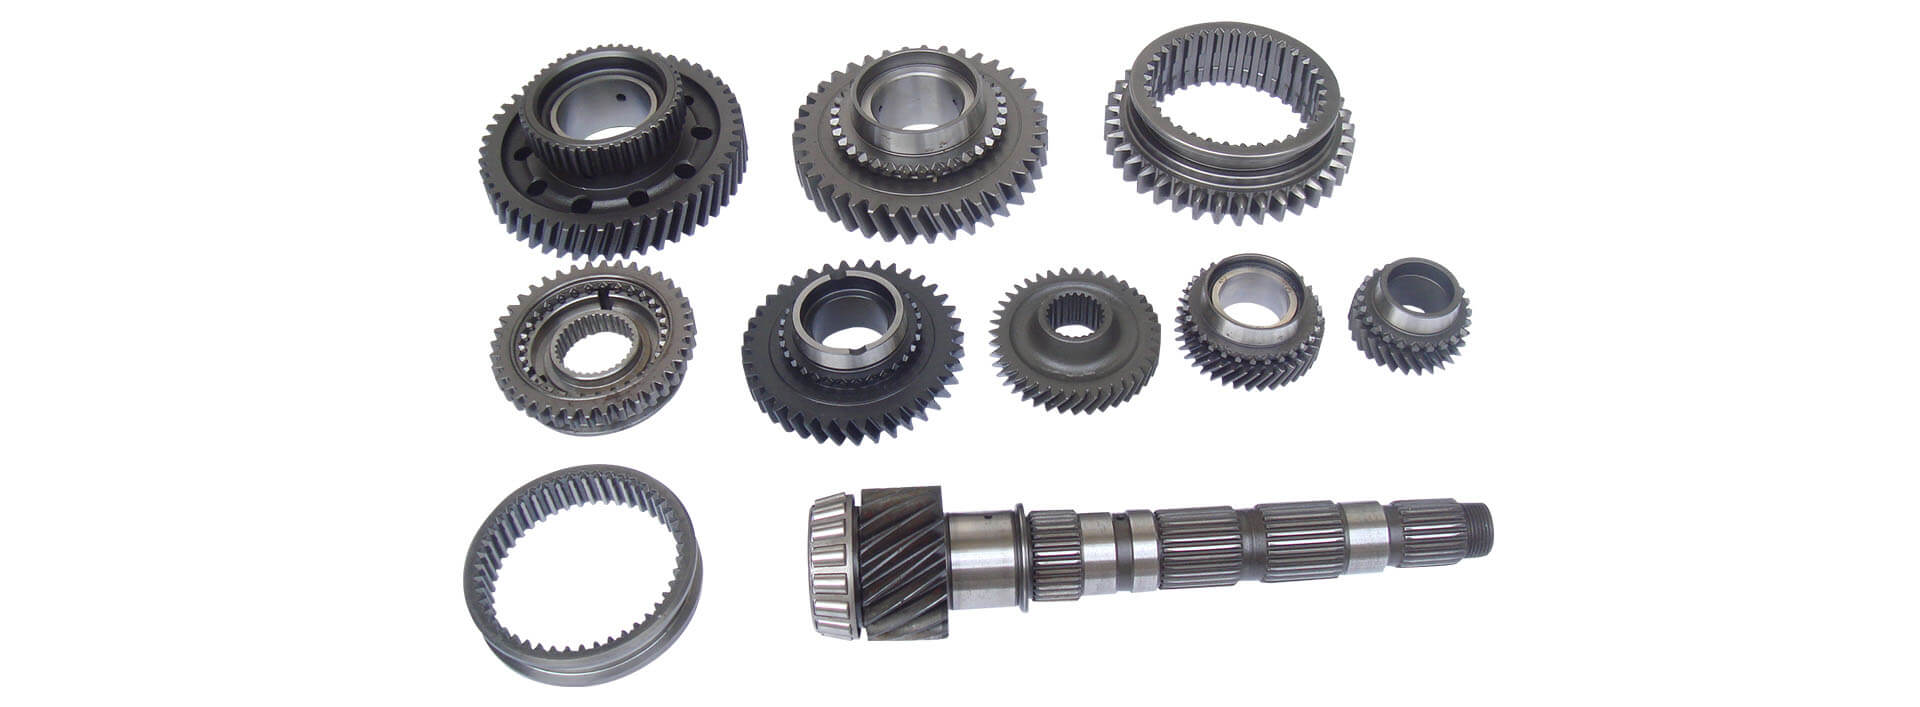 Agriculture Gears